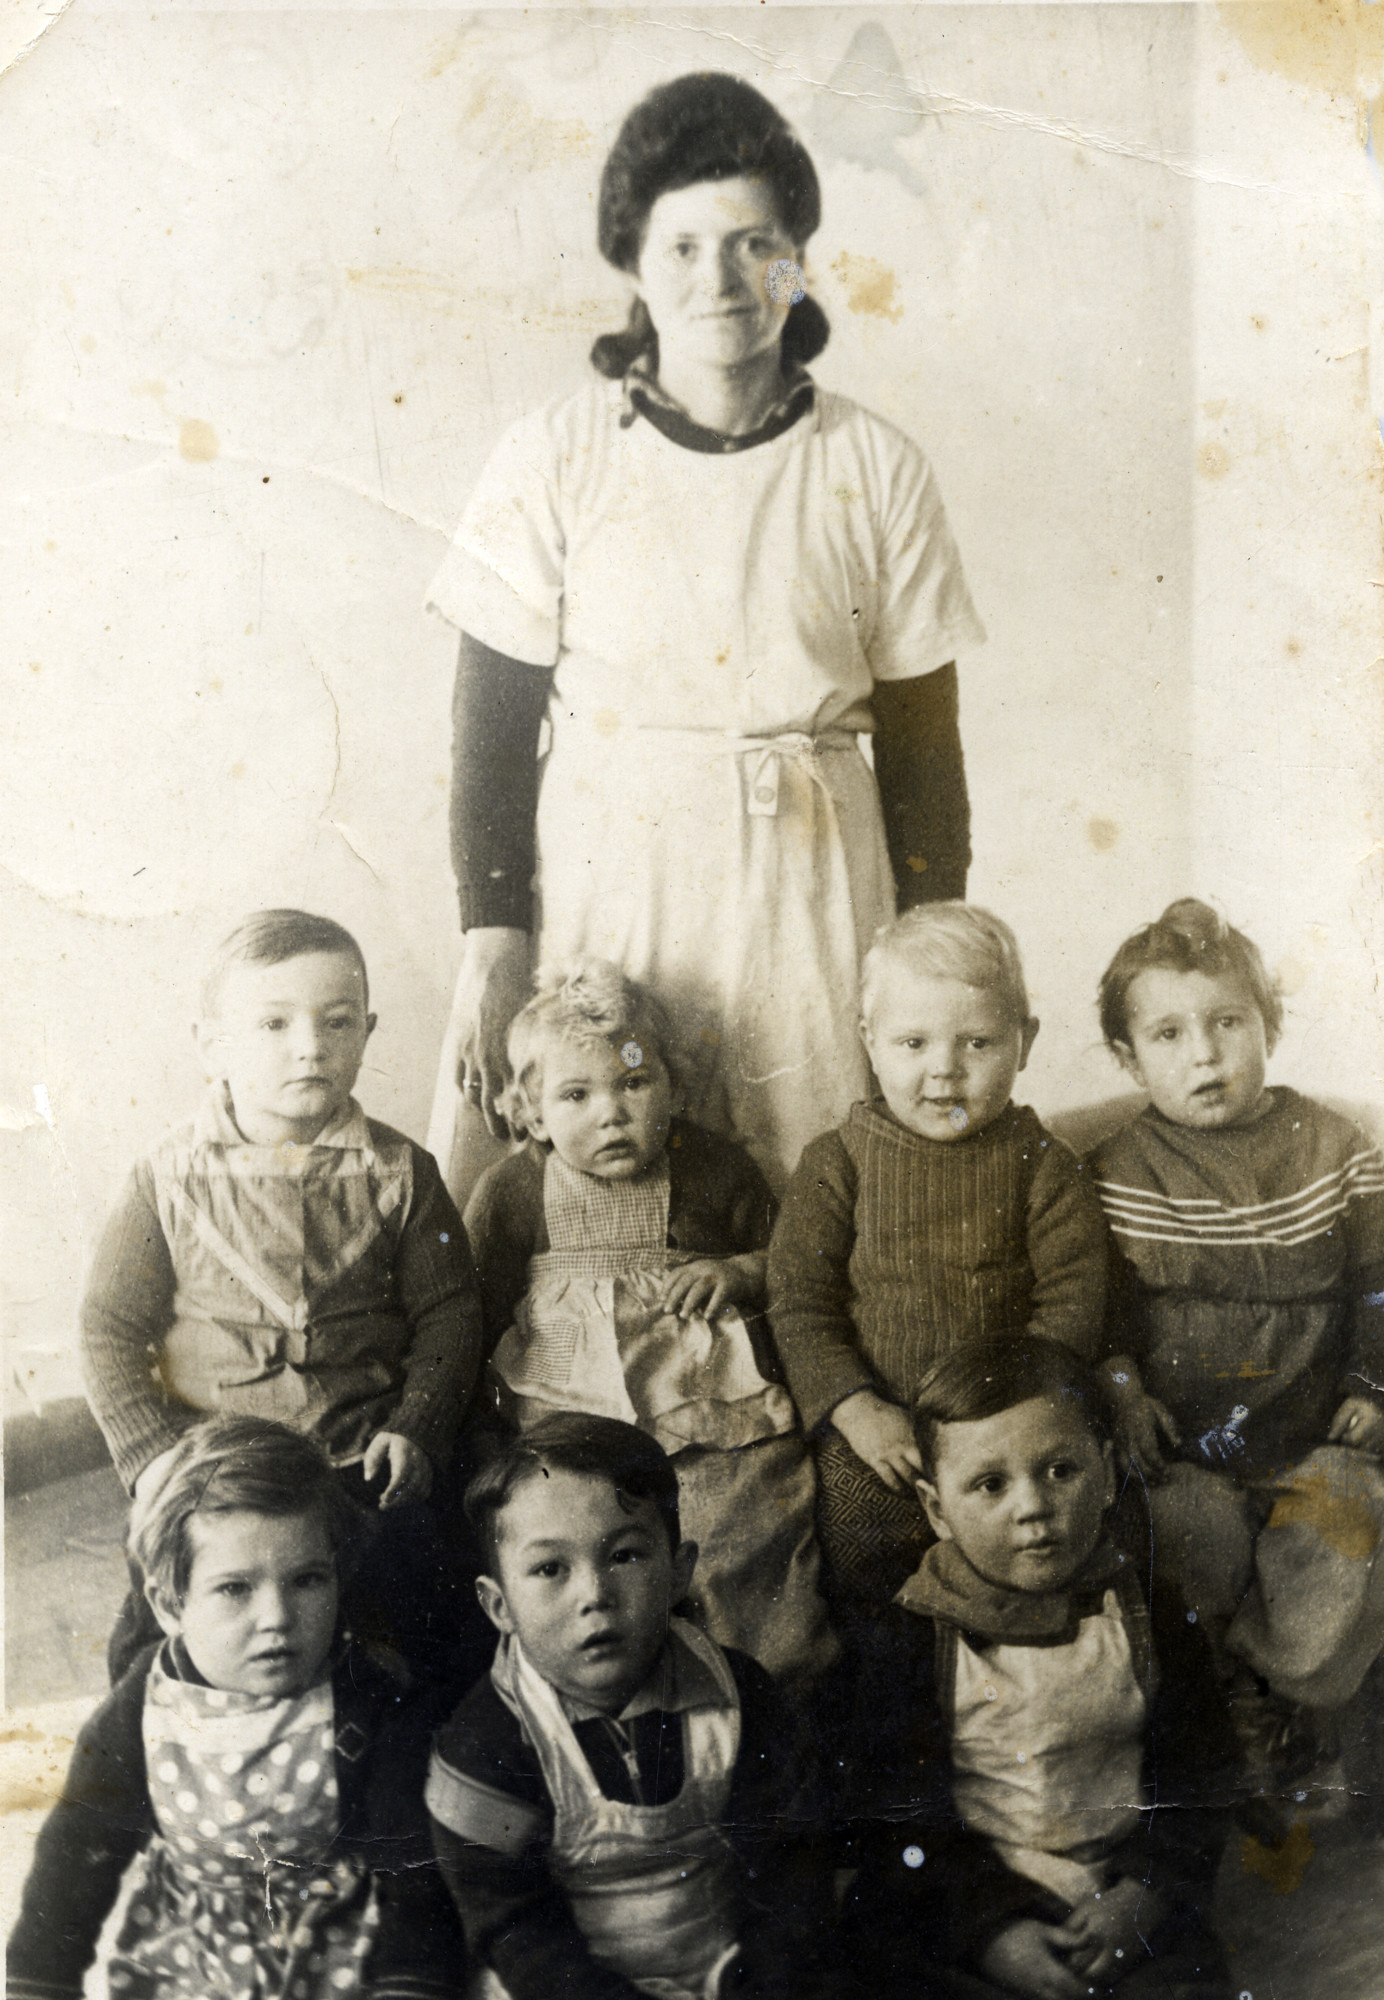 A group of toddlers and their caretaker at the Bergen-Belsen displaced persons camp.  Among those pictured are Zippy Orlin (standing in back), Illana Millman (back row, second from left) and Izak Szewelewicz (back row, third from left.)